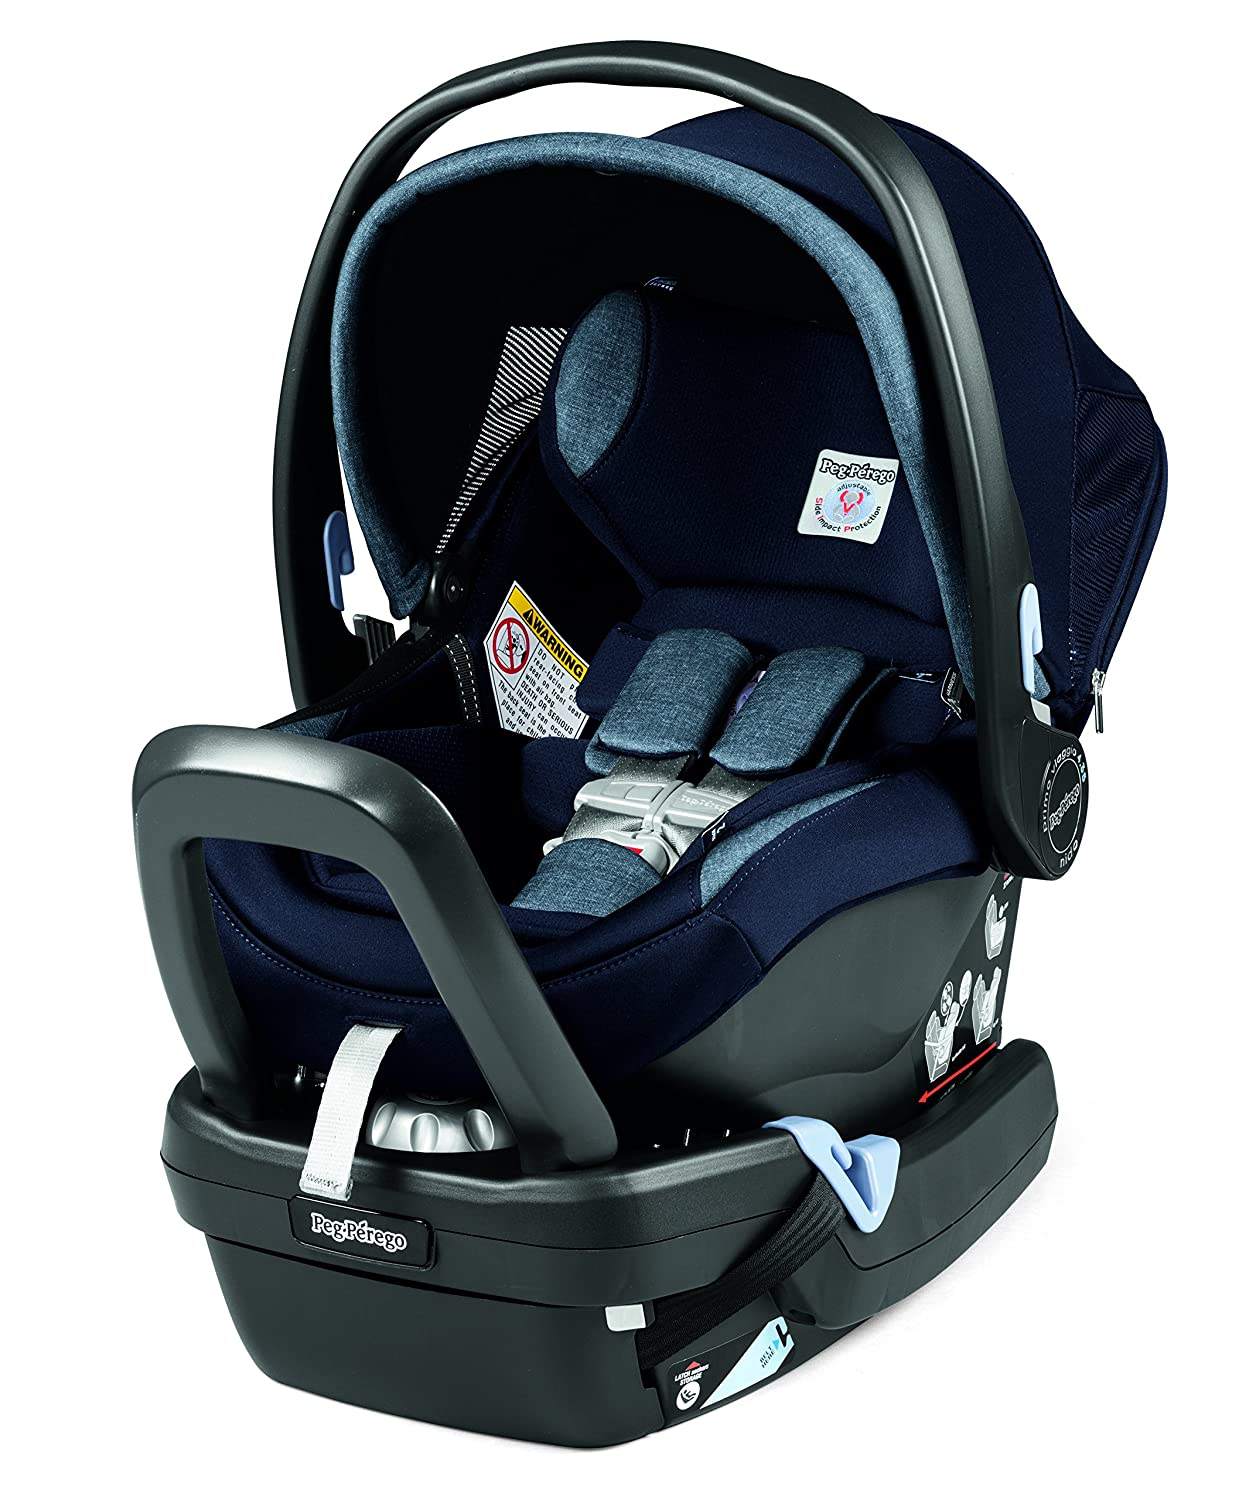 Peg Perego Primo Viaggio Nido Car Seat with Load Leg Base, Atmosphere IMPV04US35DX53TS53